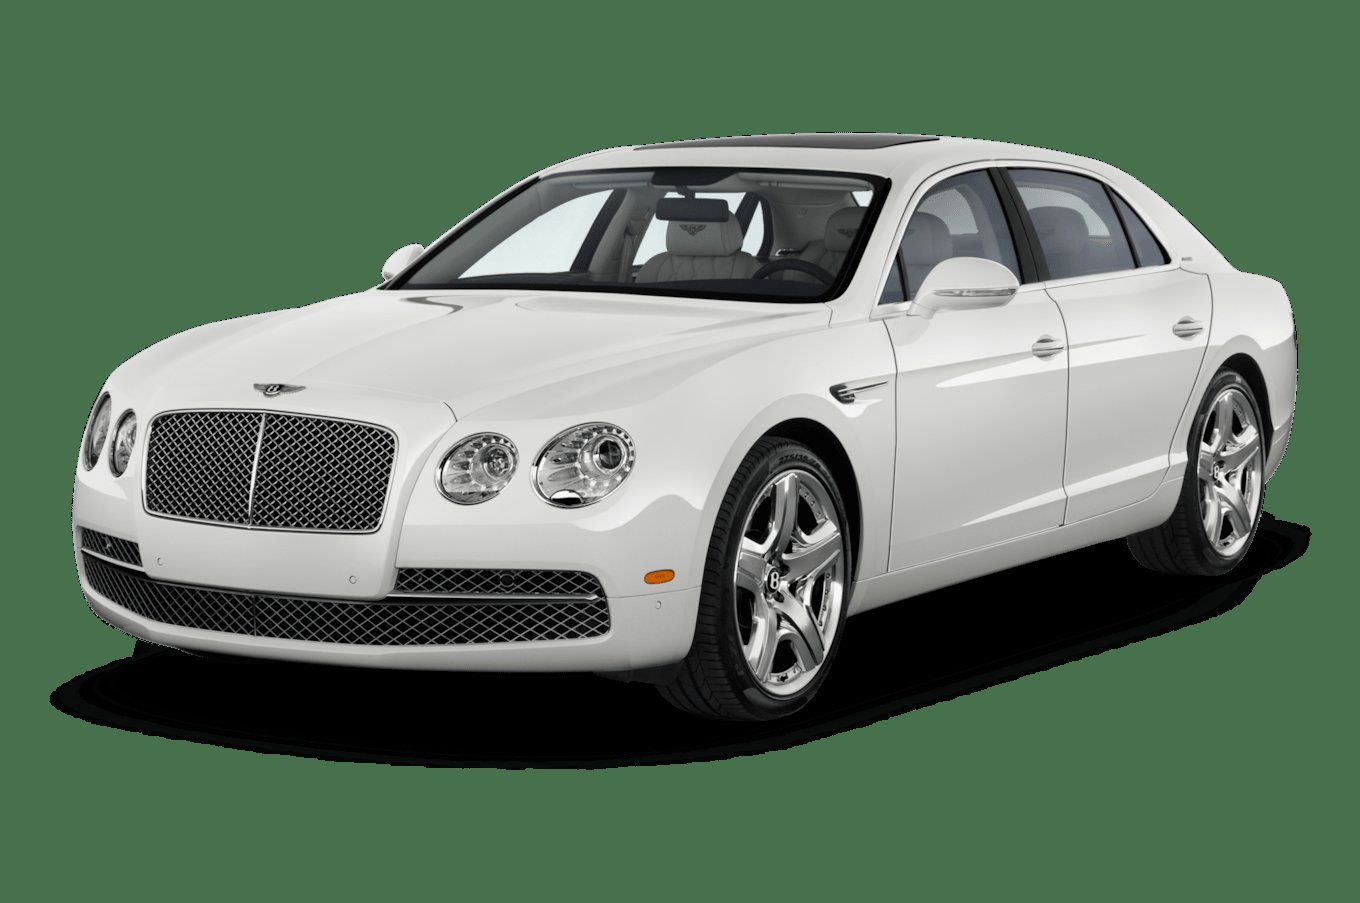 New Bentley Cars Convertible Coupe Sedan Suv Crossover On This Month